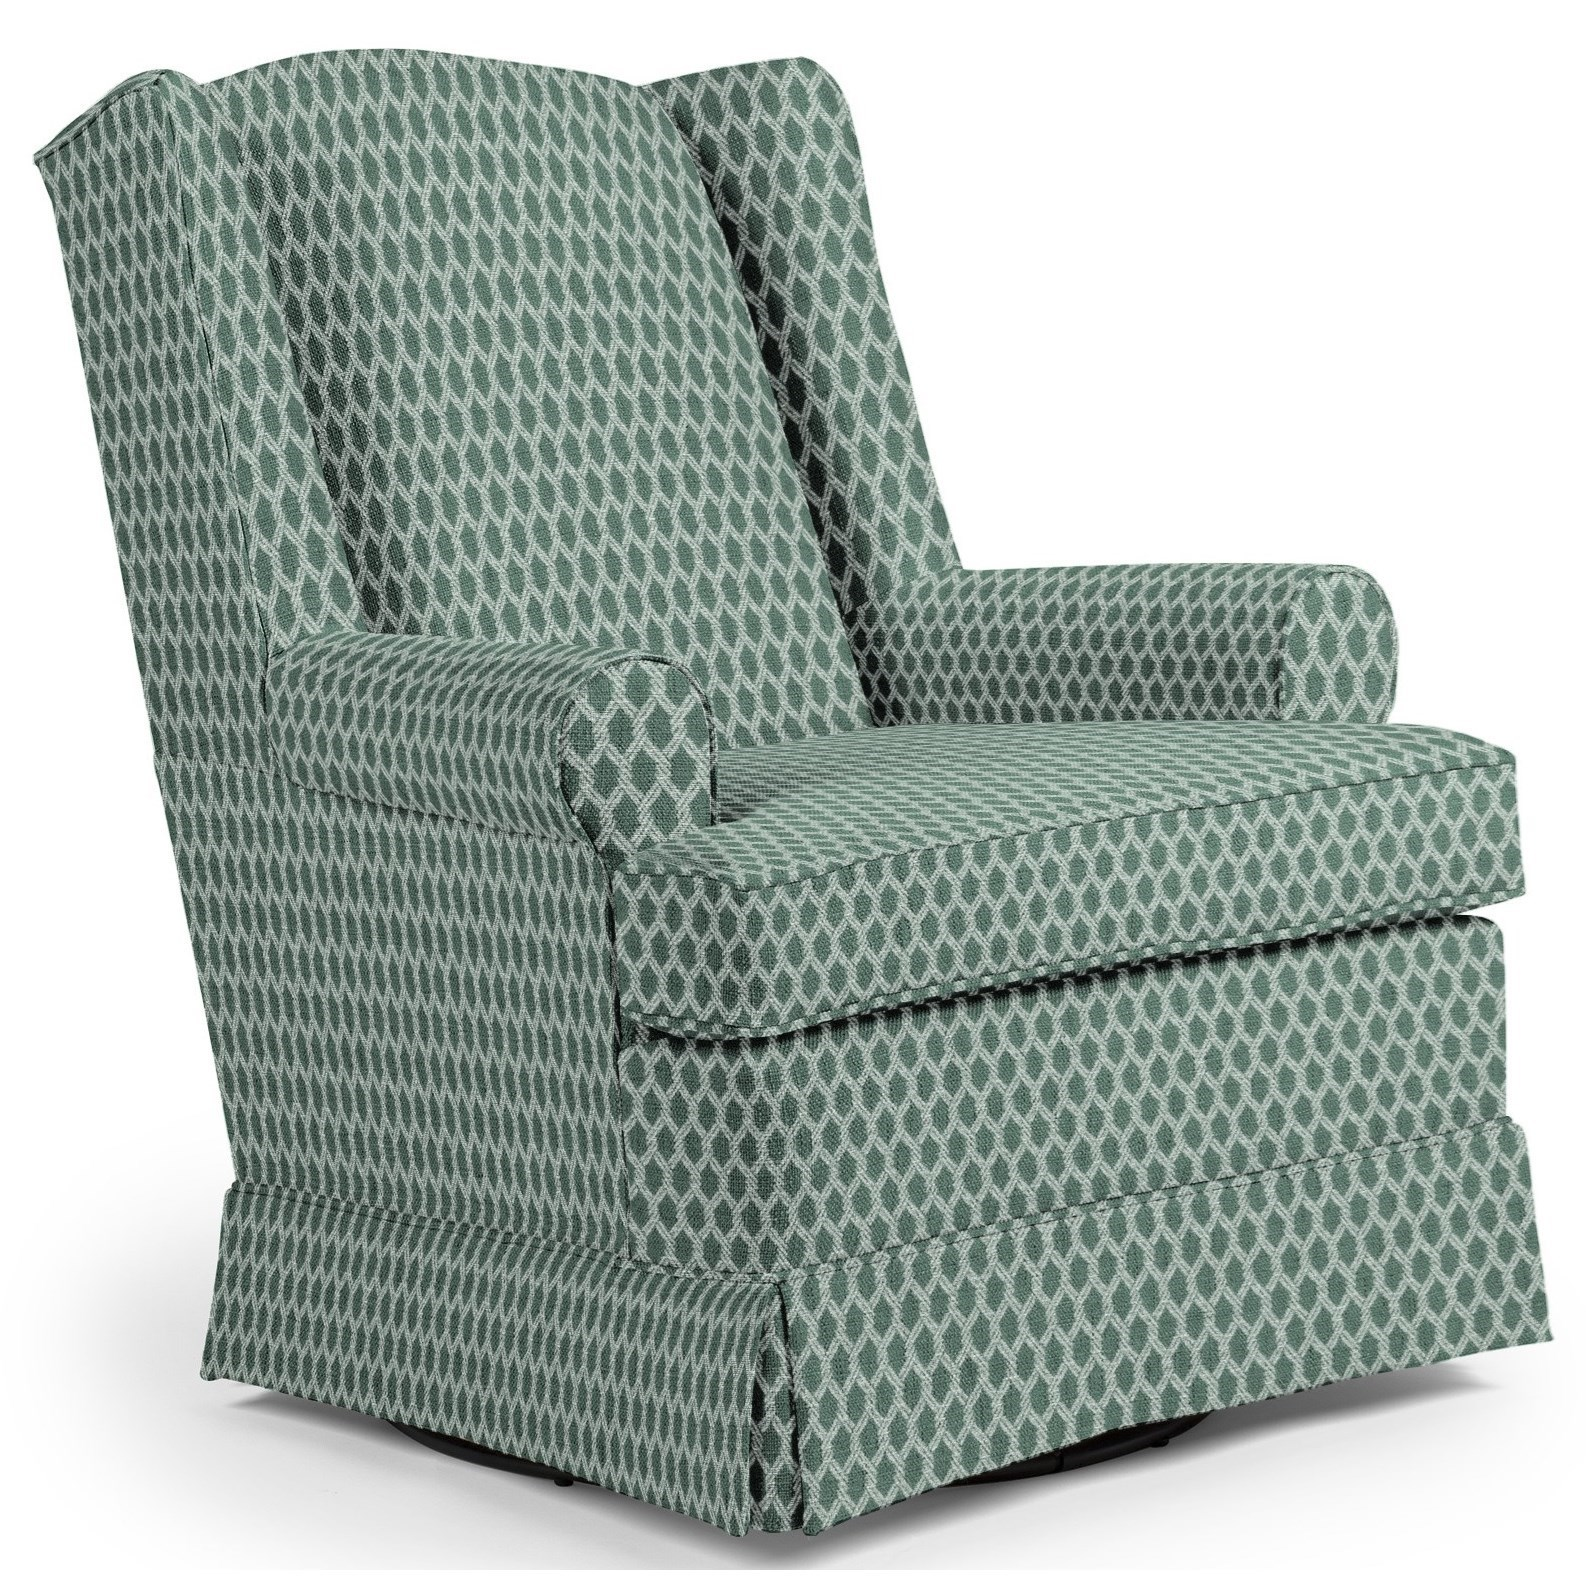 Best Home Furnishings Chairs - Swivel Glide Roni Swivel Glider Chair - Item Number: 7197-33542A